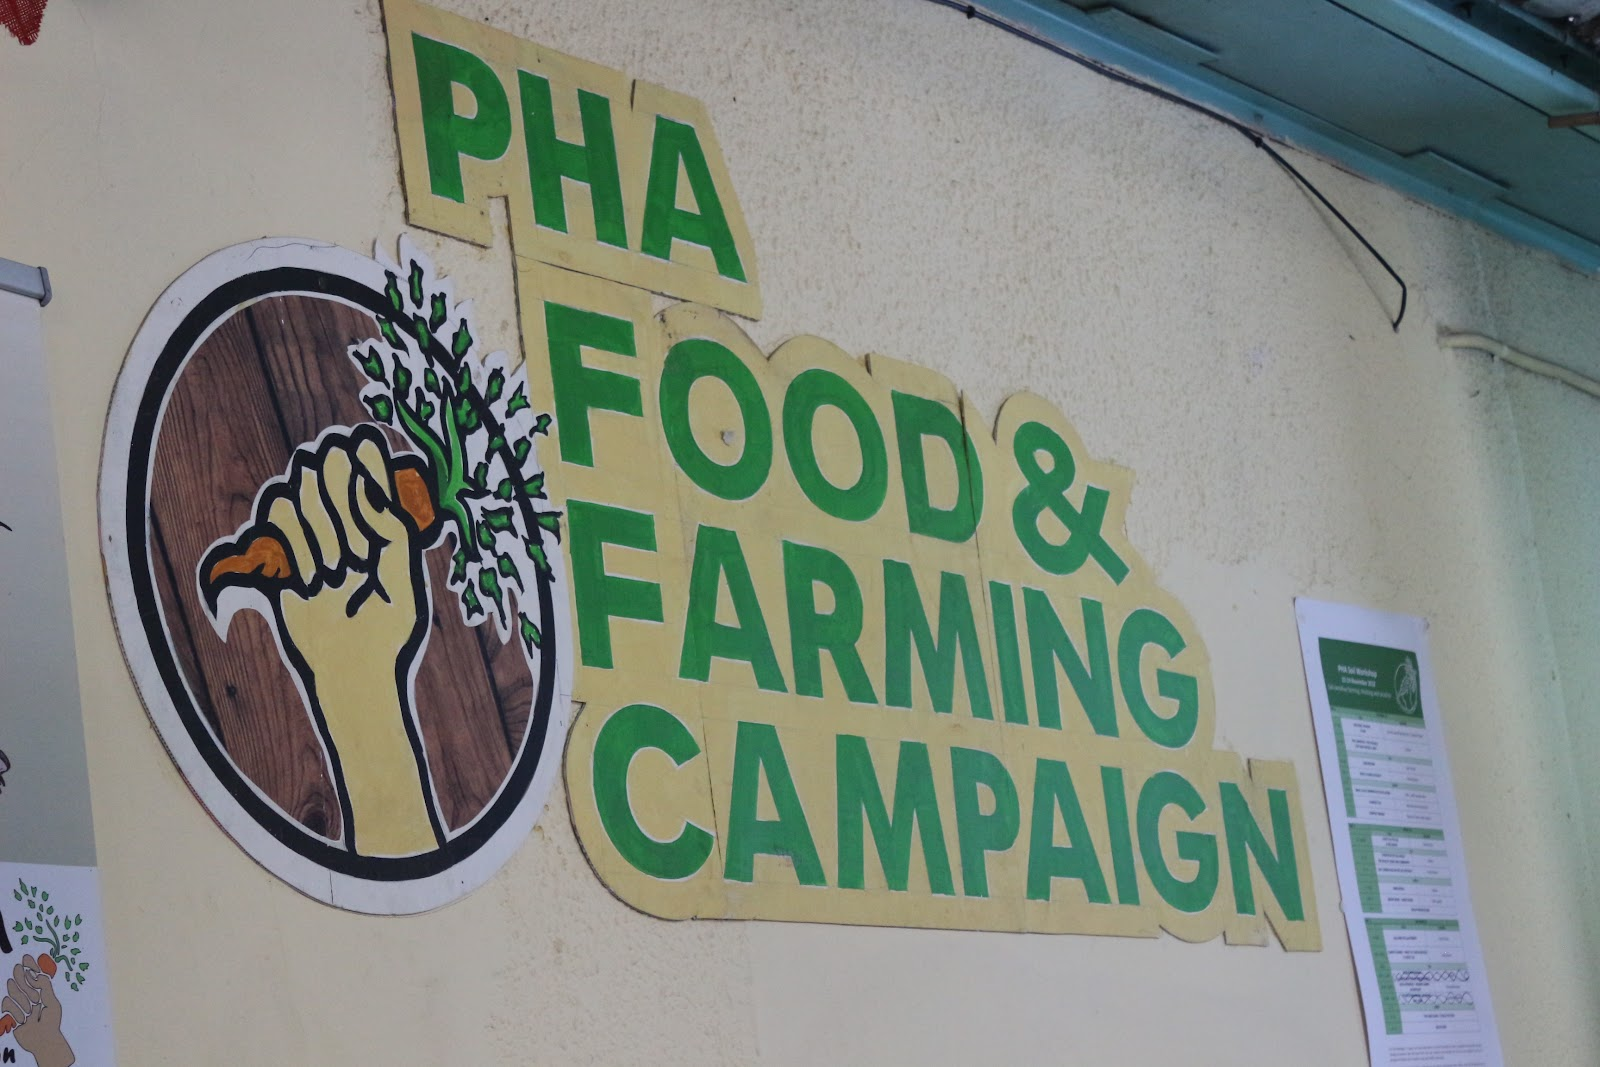 Sign that says PHA FOOD & FARMING CAMPAIGN on a yellow wall. To the left of the sign is a hand holding a carrot behind a background painted like hardwood circle.